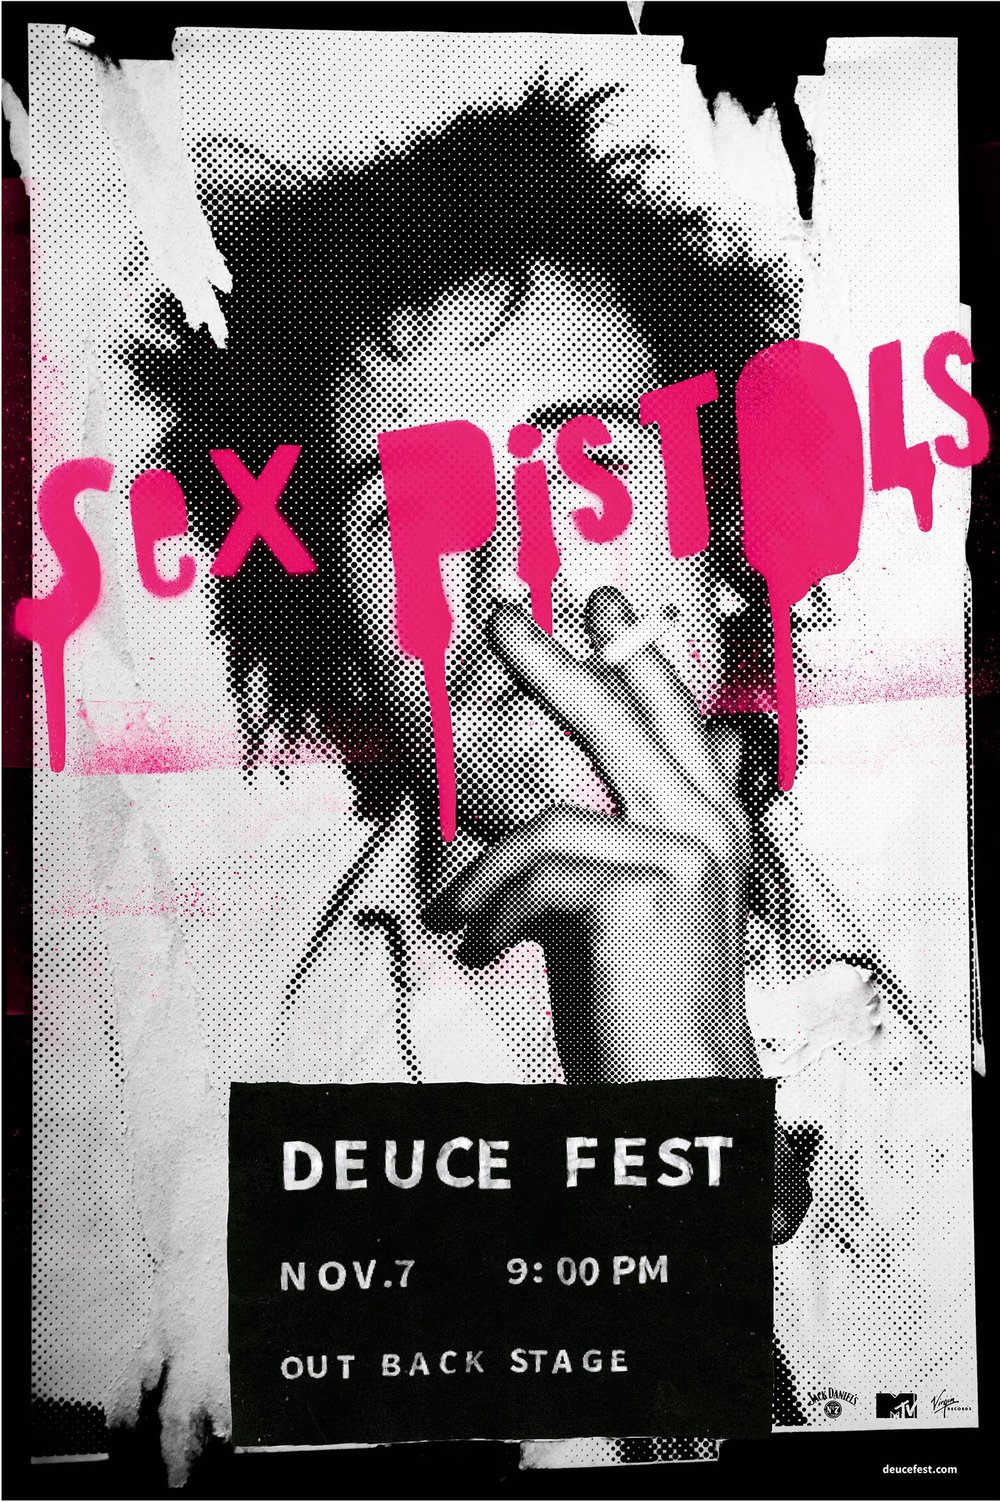 Sex Pistols, Deuce Fest - illustrated poster by Rae Maher